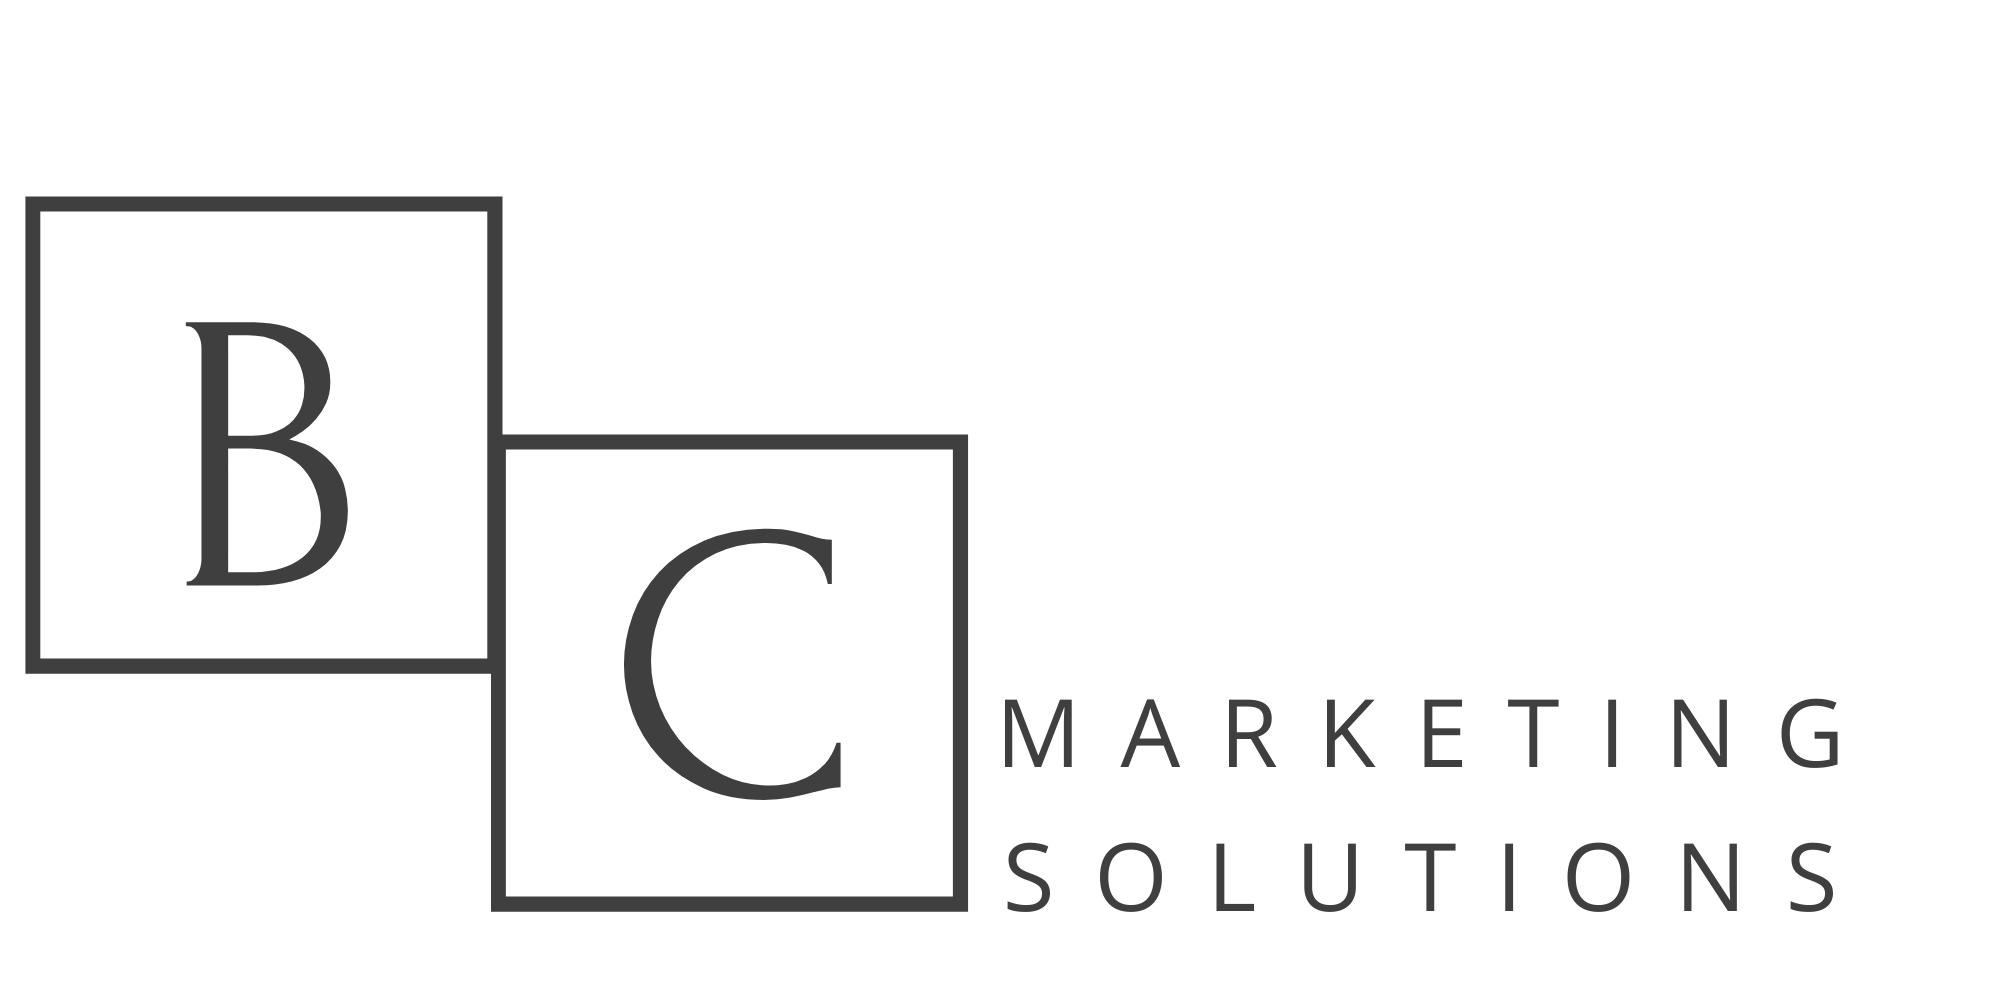 BC Marketing Solutions